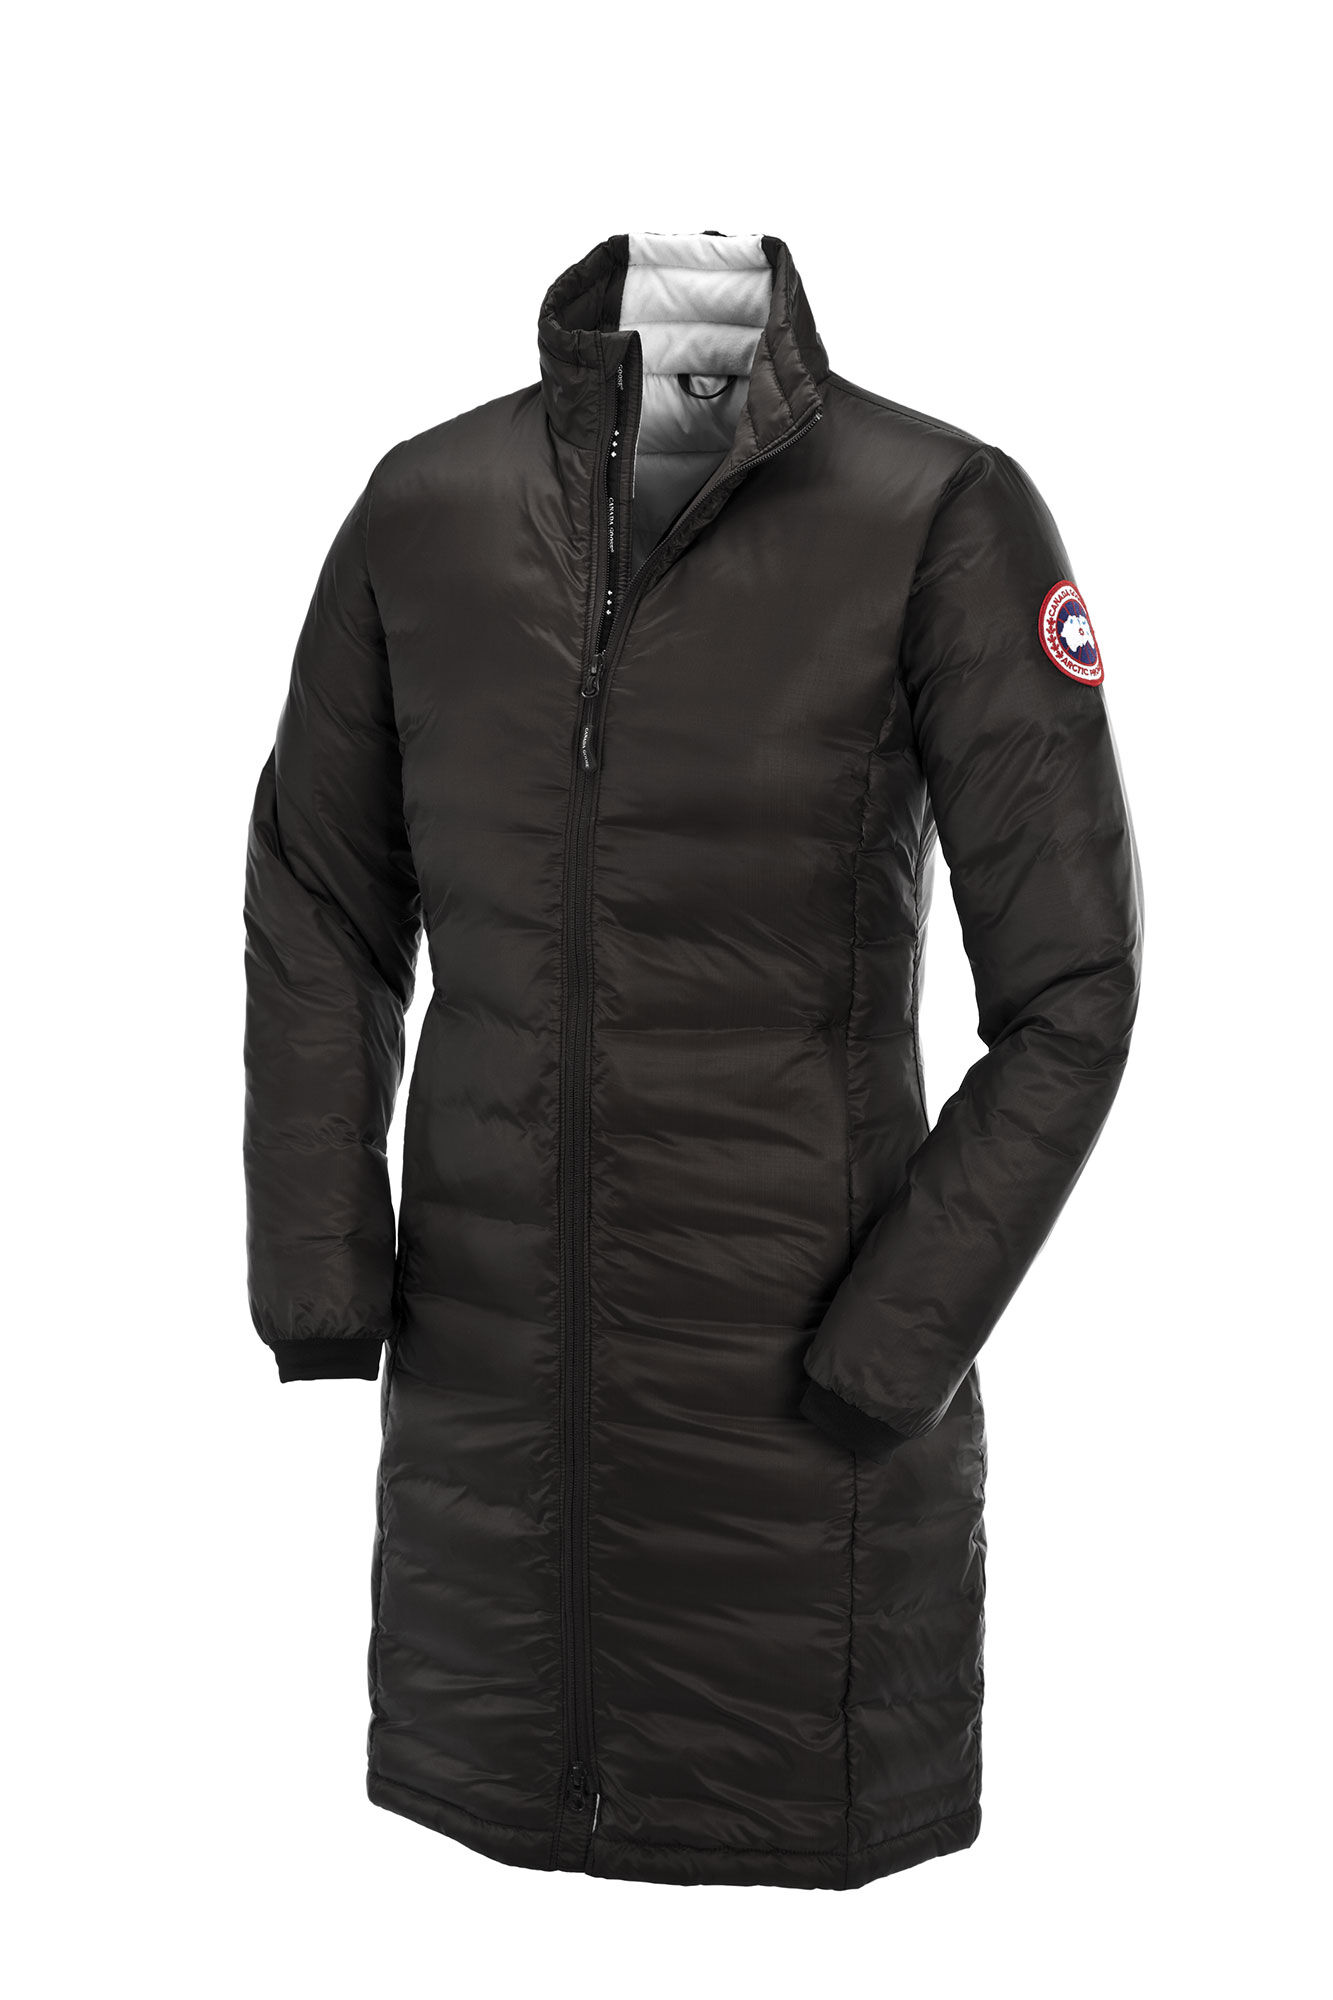 Canada Goose mens replica discounts - Womens Extreme Weather Outerwear | Canada Goose?